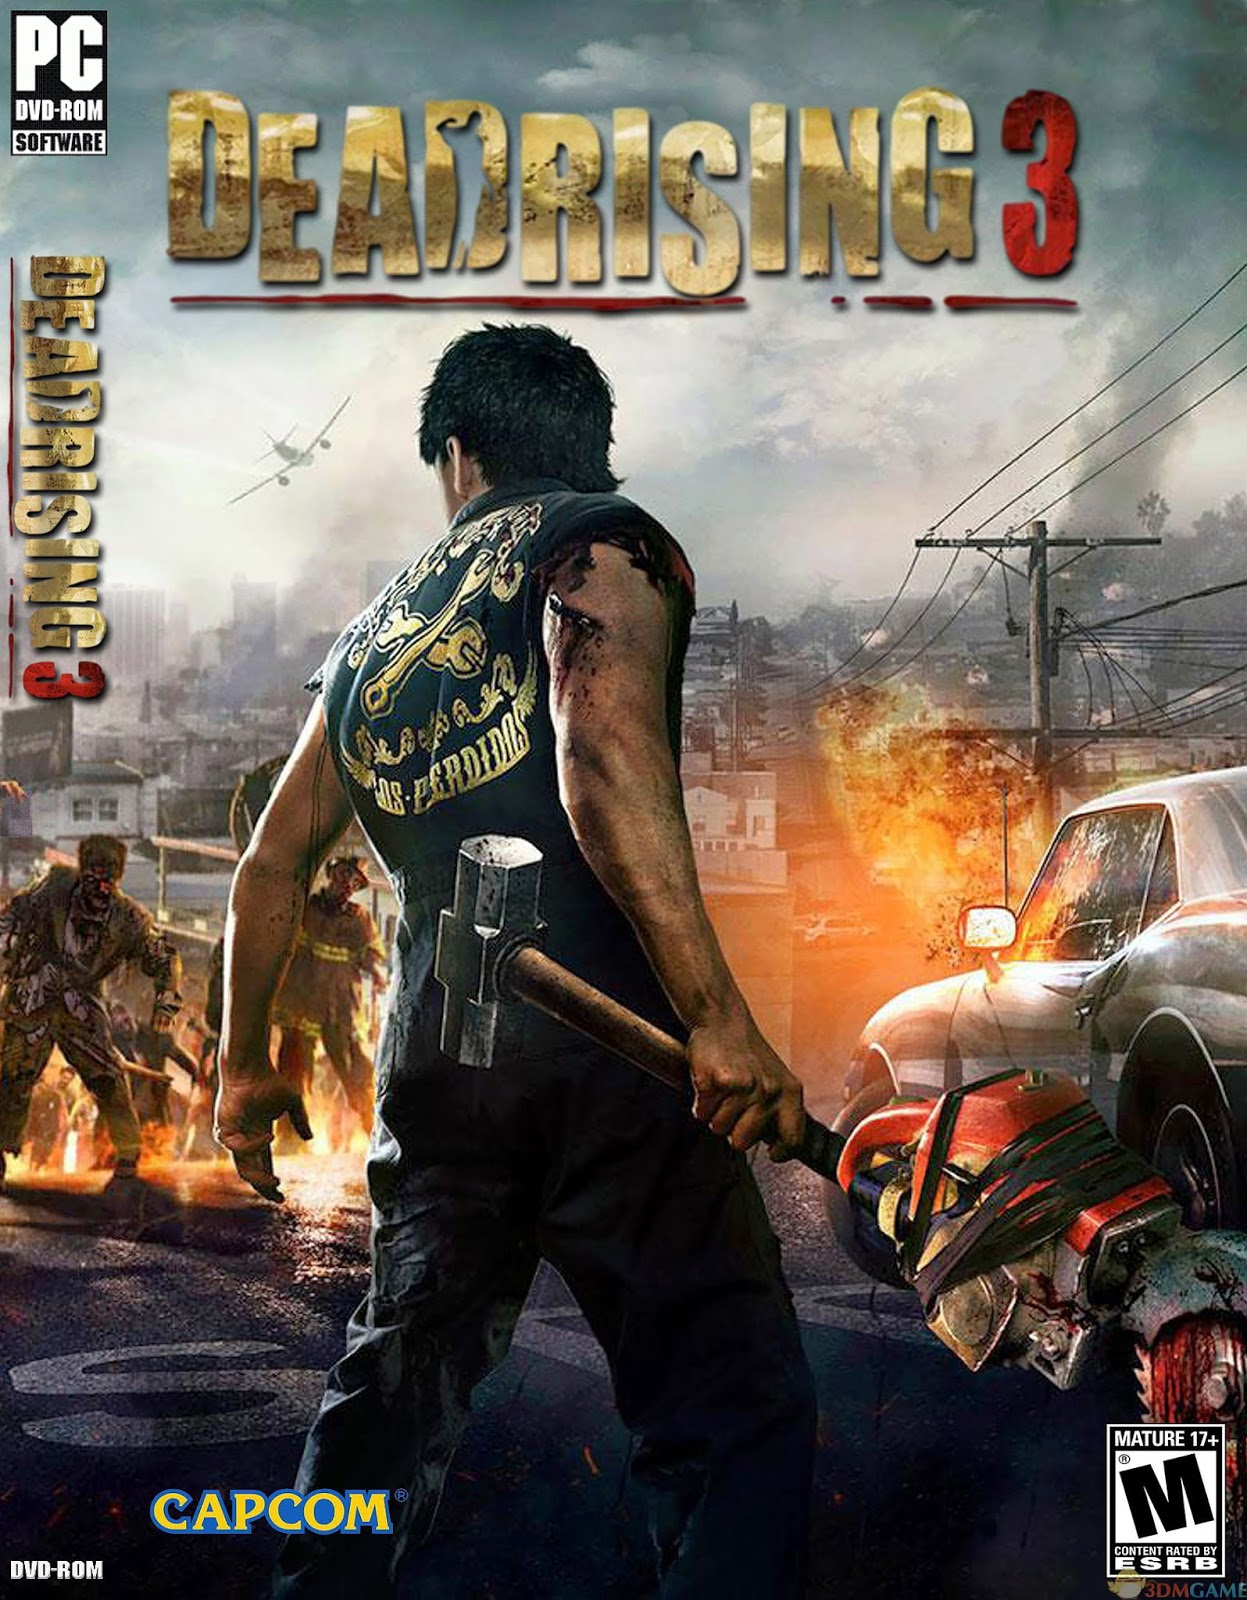 [PC] Dead Rising 3: Apocalypse Edition (2014)   Download Game Full Iso